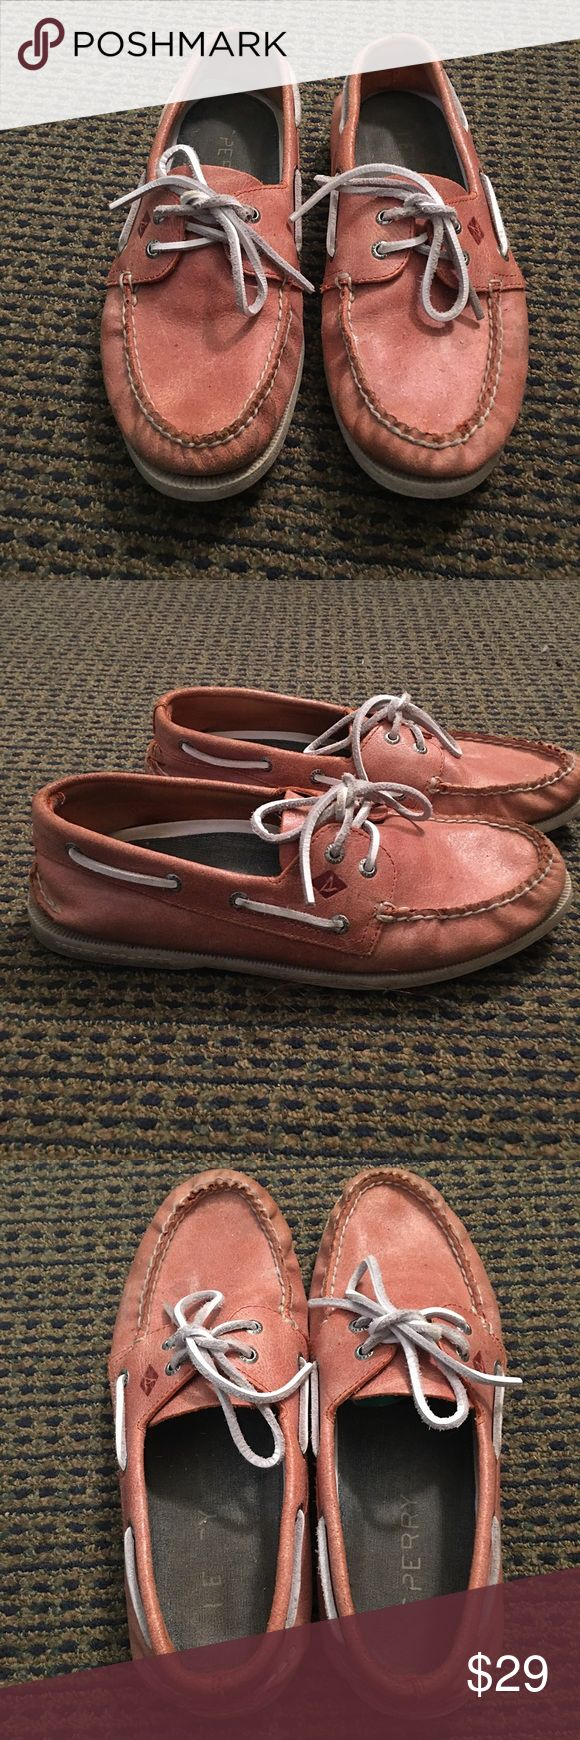 10 Sperry Top-Sider Special Edition Boat Shoe Purchased at a Sperry Pre-Sale Convention. Salmon colored. Very comfortable. Good condition. (Worn, but well taken care of) Sperry Shoes Boat Shoes